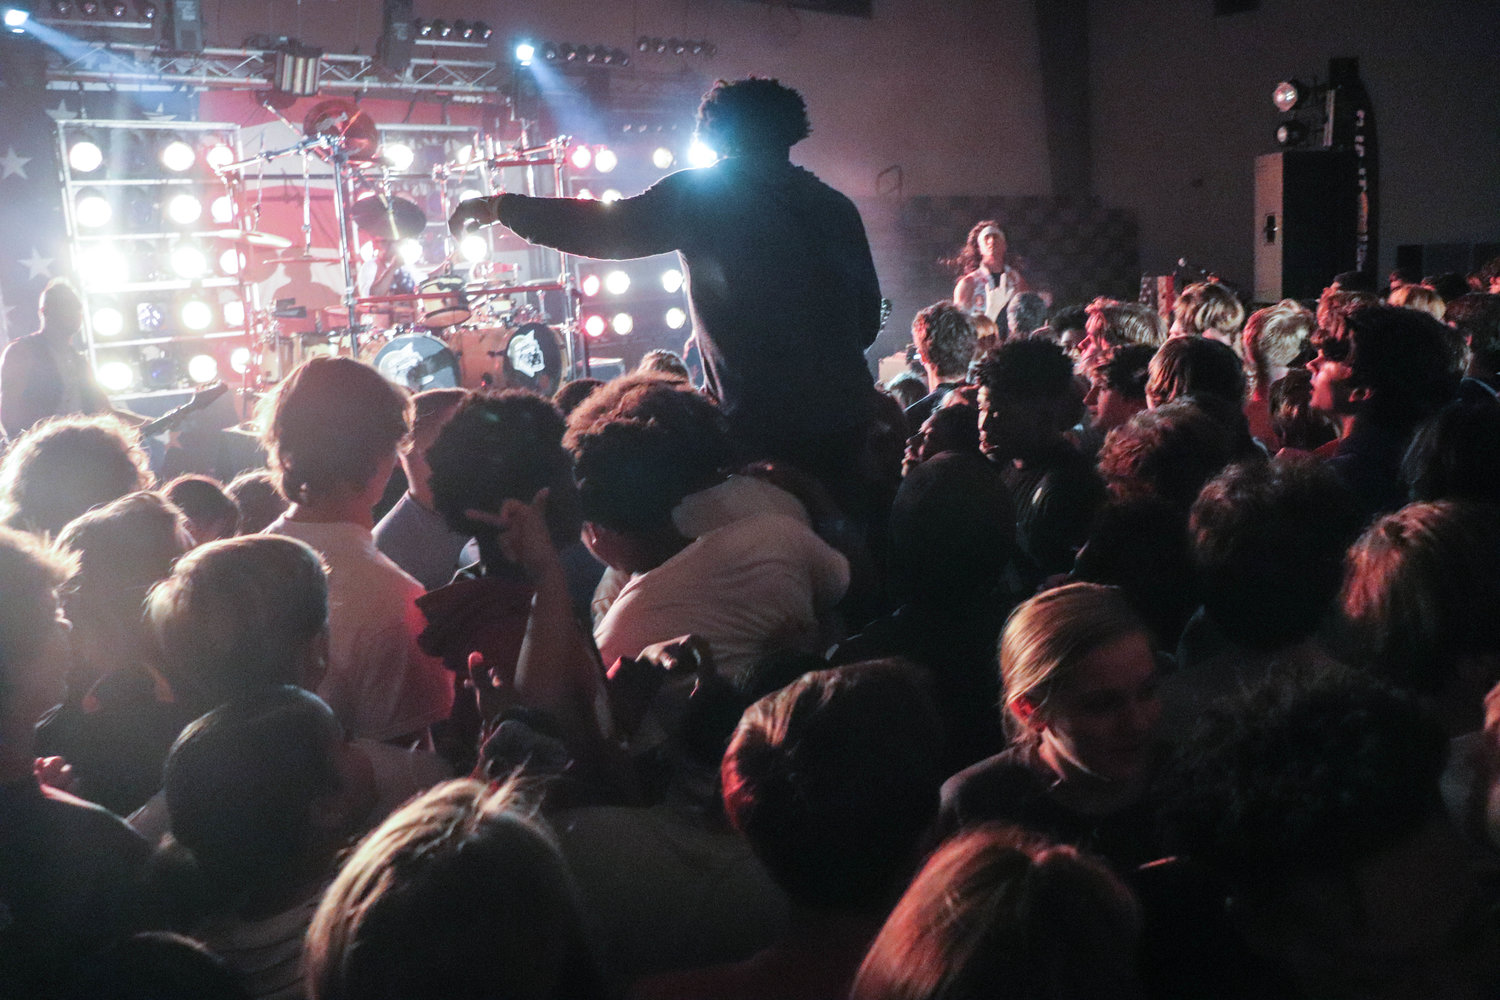 Students filled the school gym to watch the Velcro Pygmies perform.